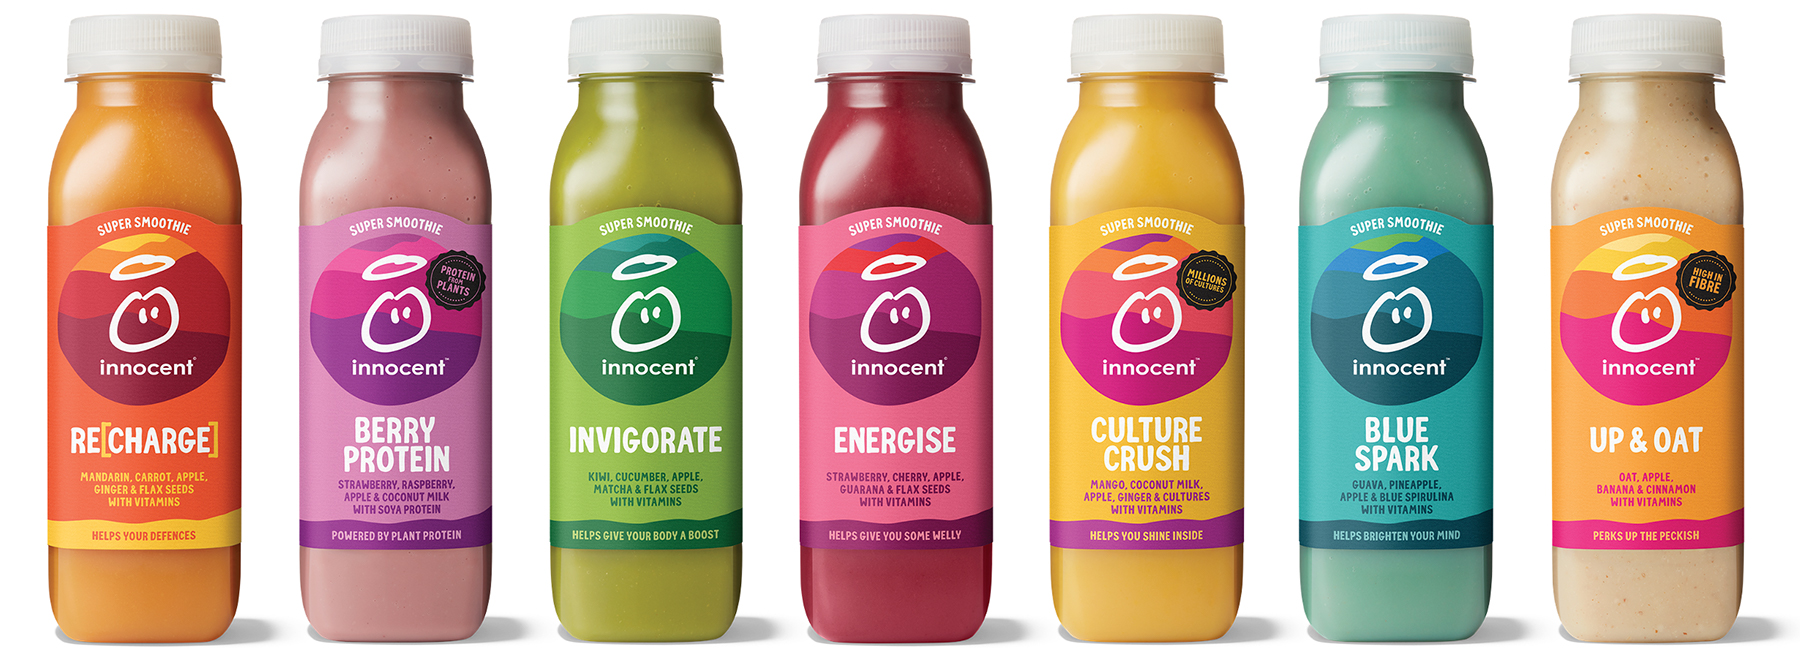 RENEE MELO LTD NNOCENT SUPER SMOOTHIES_02